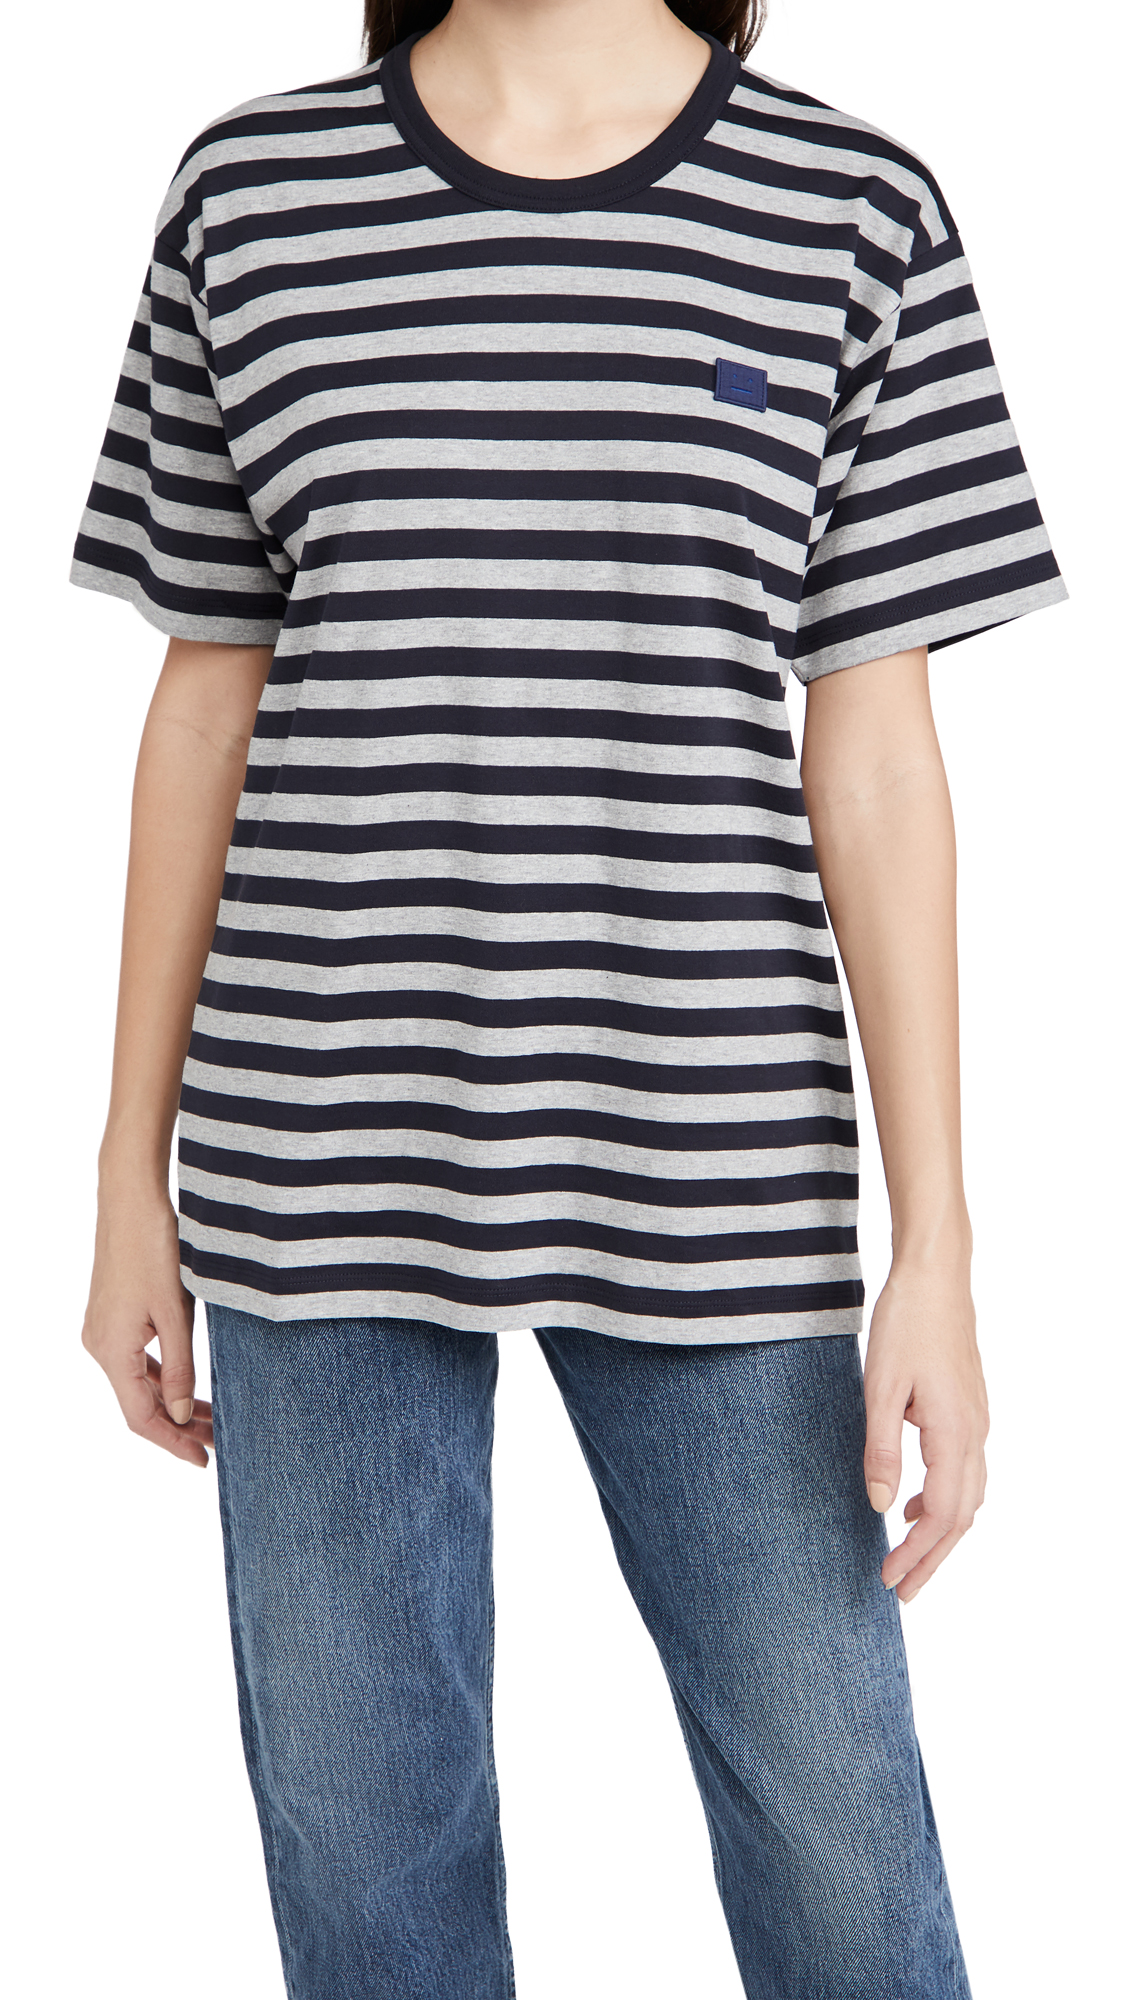 Acne Studios Short Sleeve Tee